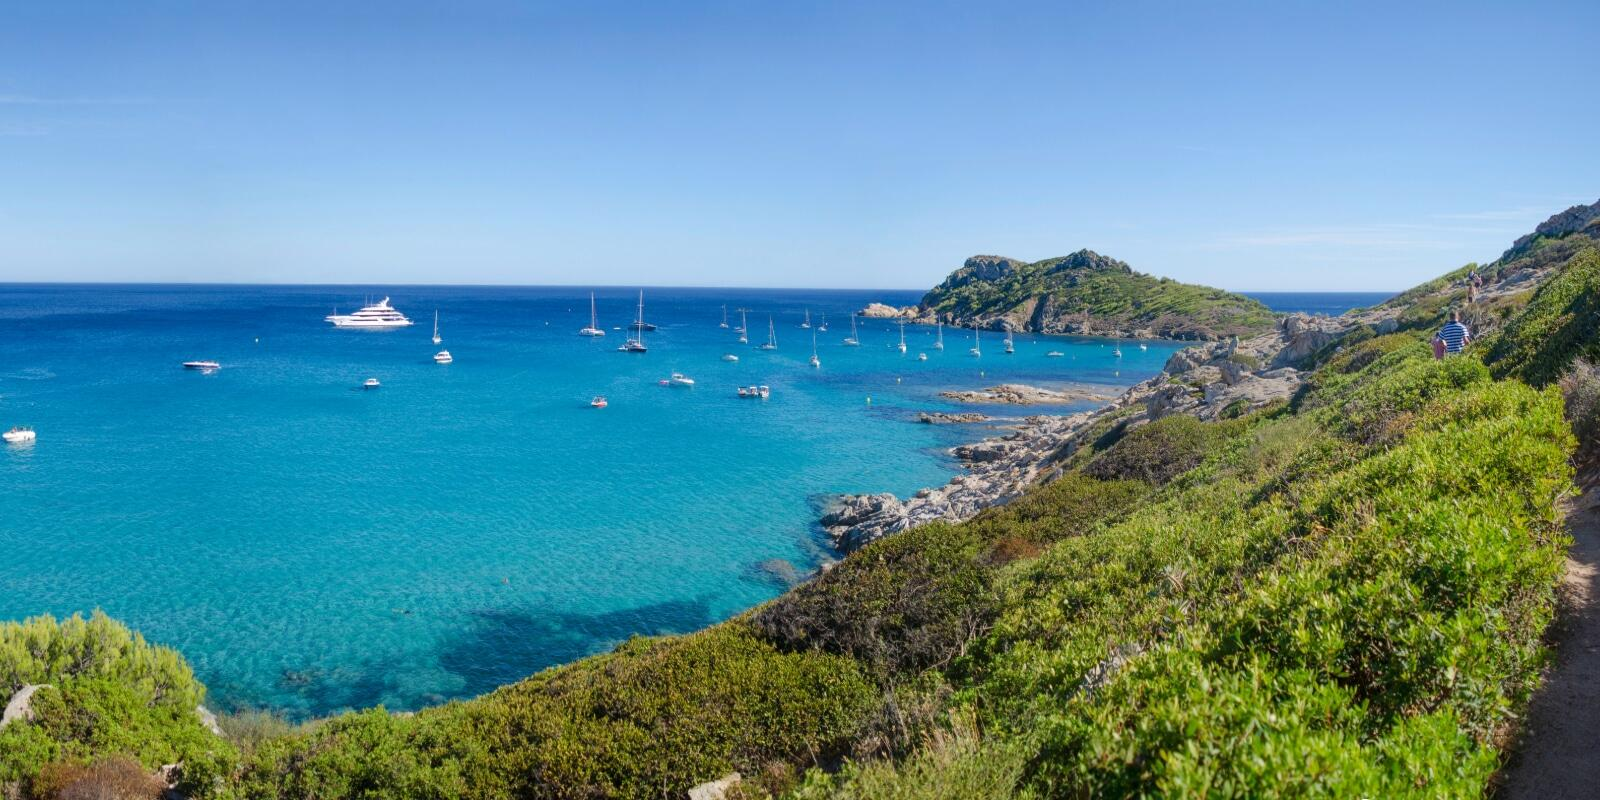 ONE WAY - Sailing and Wild Sea: from the French Riviera to Tuscany